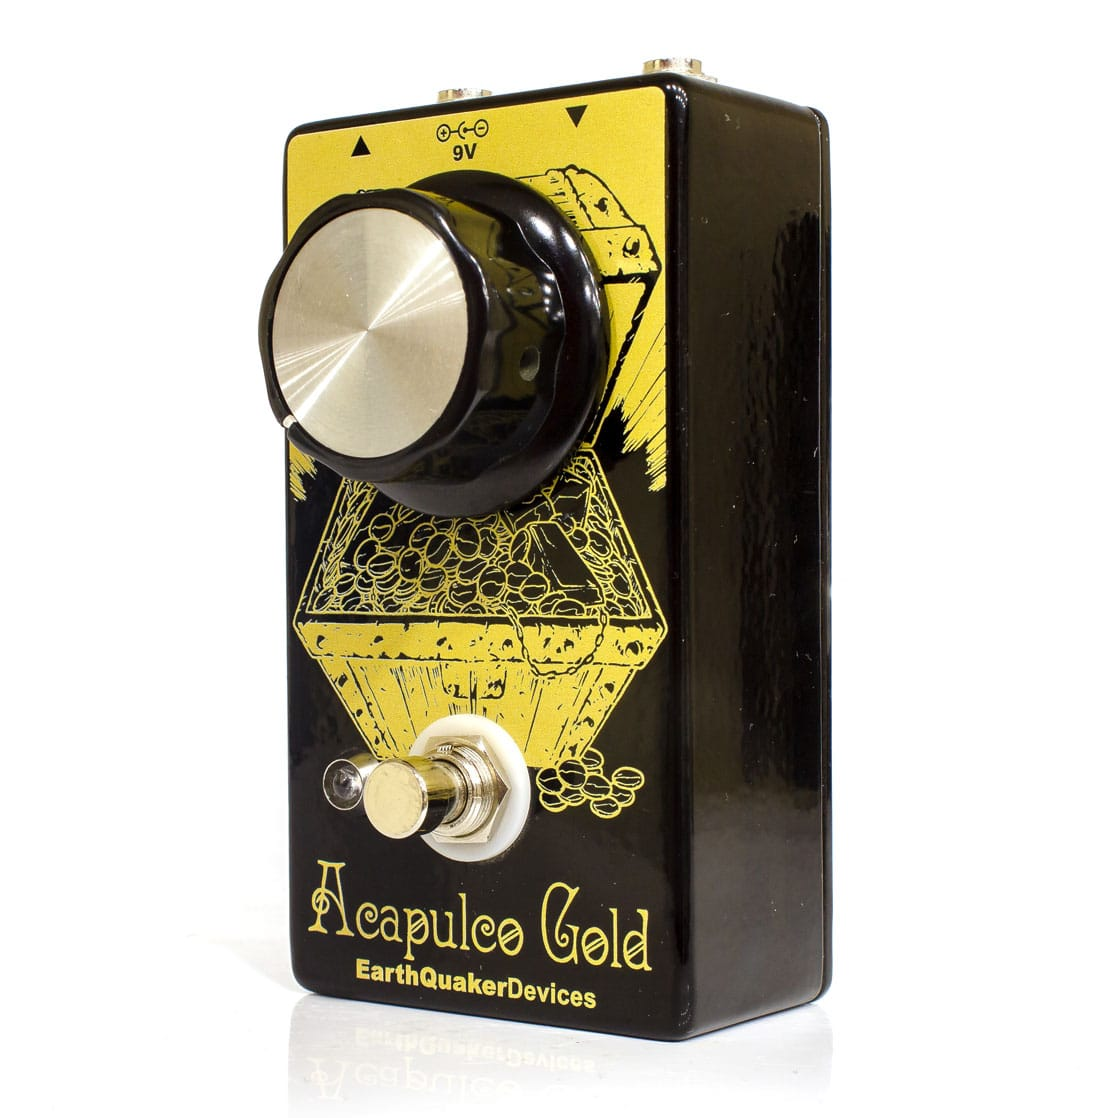 EarthQuaker Devices Acapulco Gold V2 review